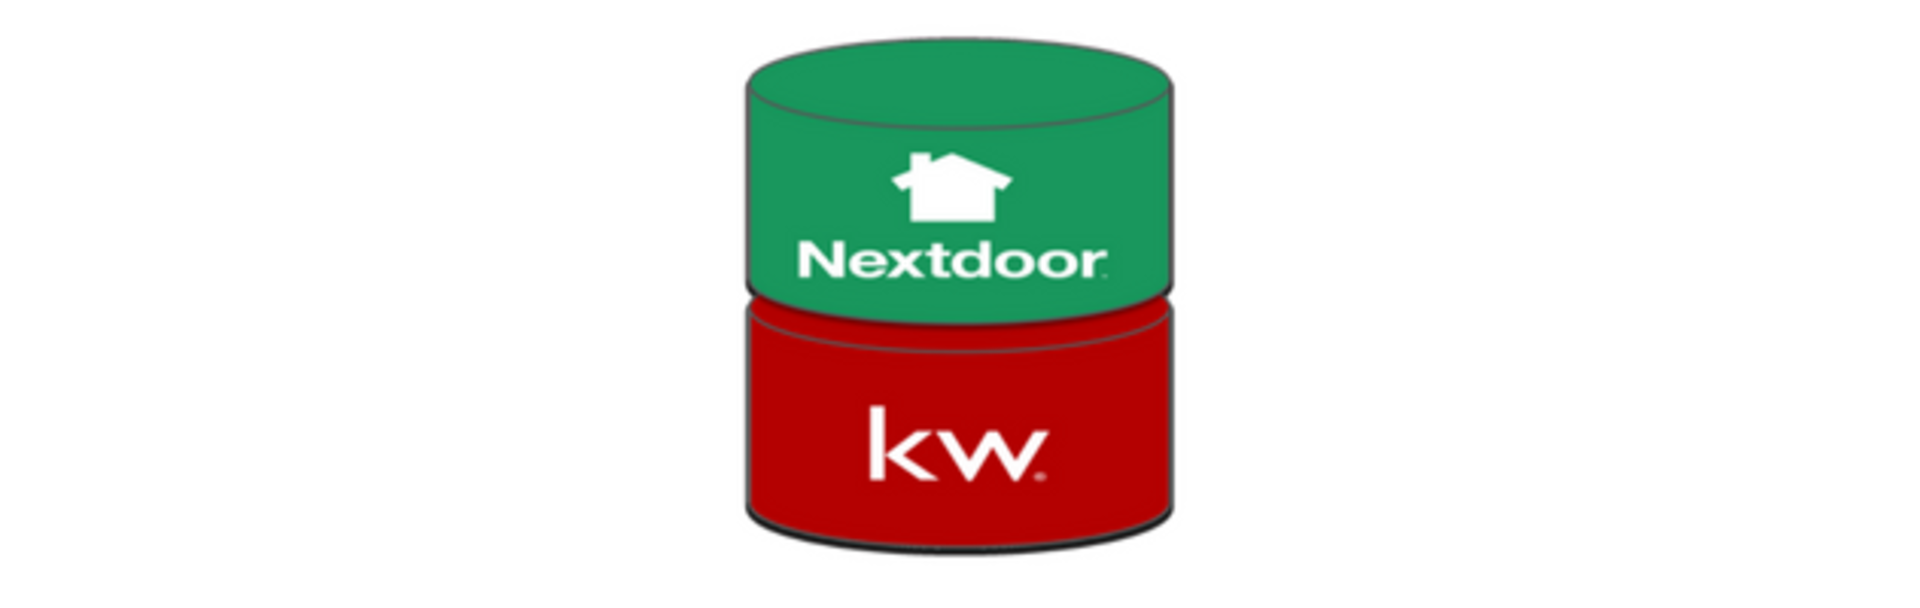 Keller Williams Partners with Nextdoor for Data Insights to Empower Agents